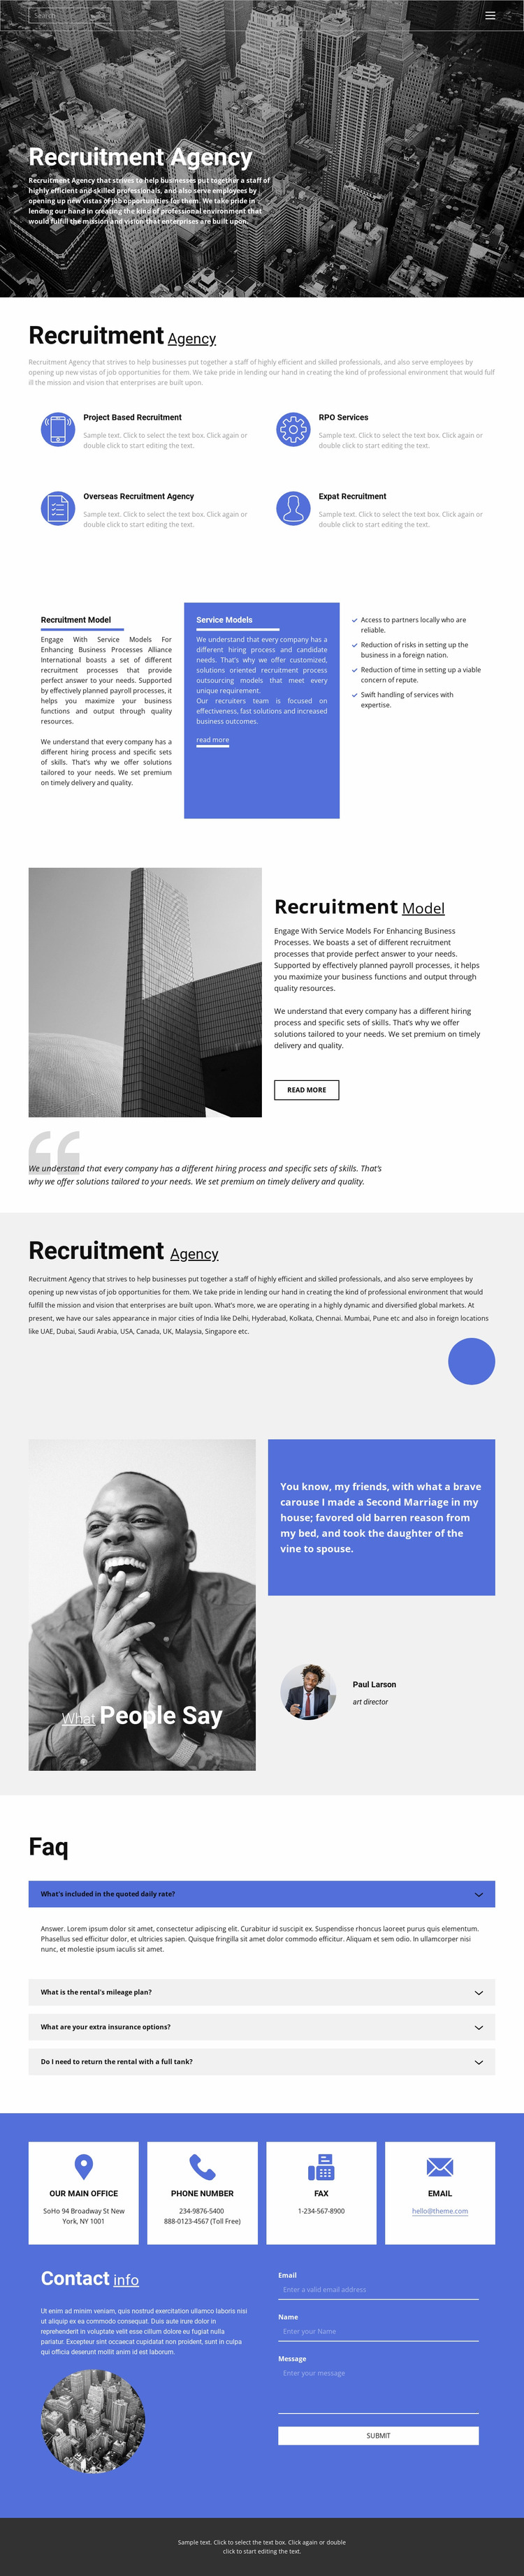 Recruiting agency with good experience Website Mockup